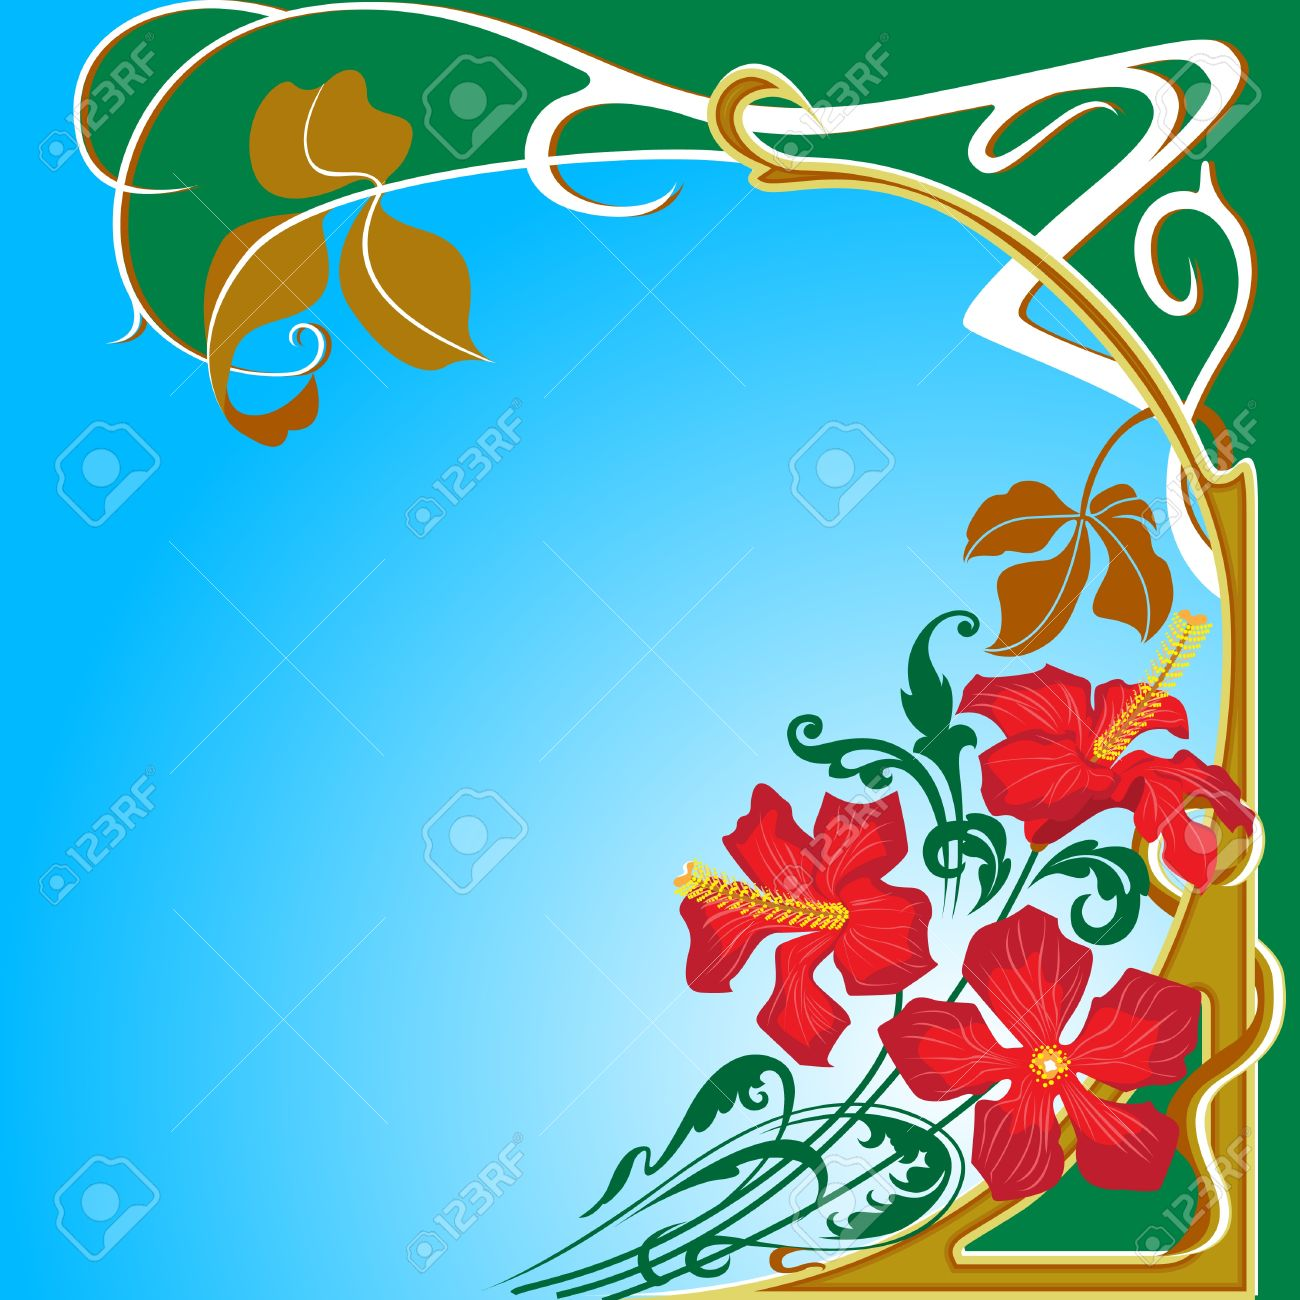 Flowers and  floral design in Art Nouveau style. Stock Vector - 11650677